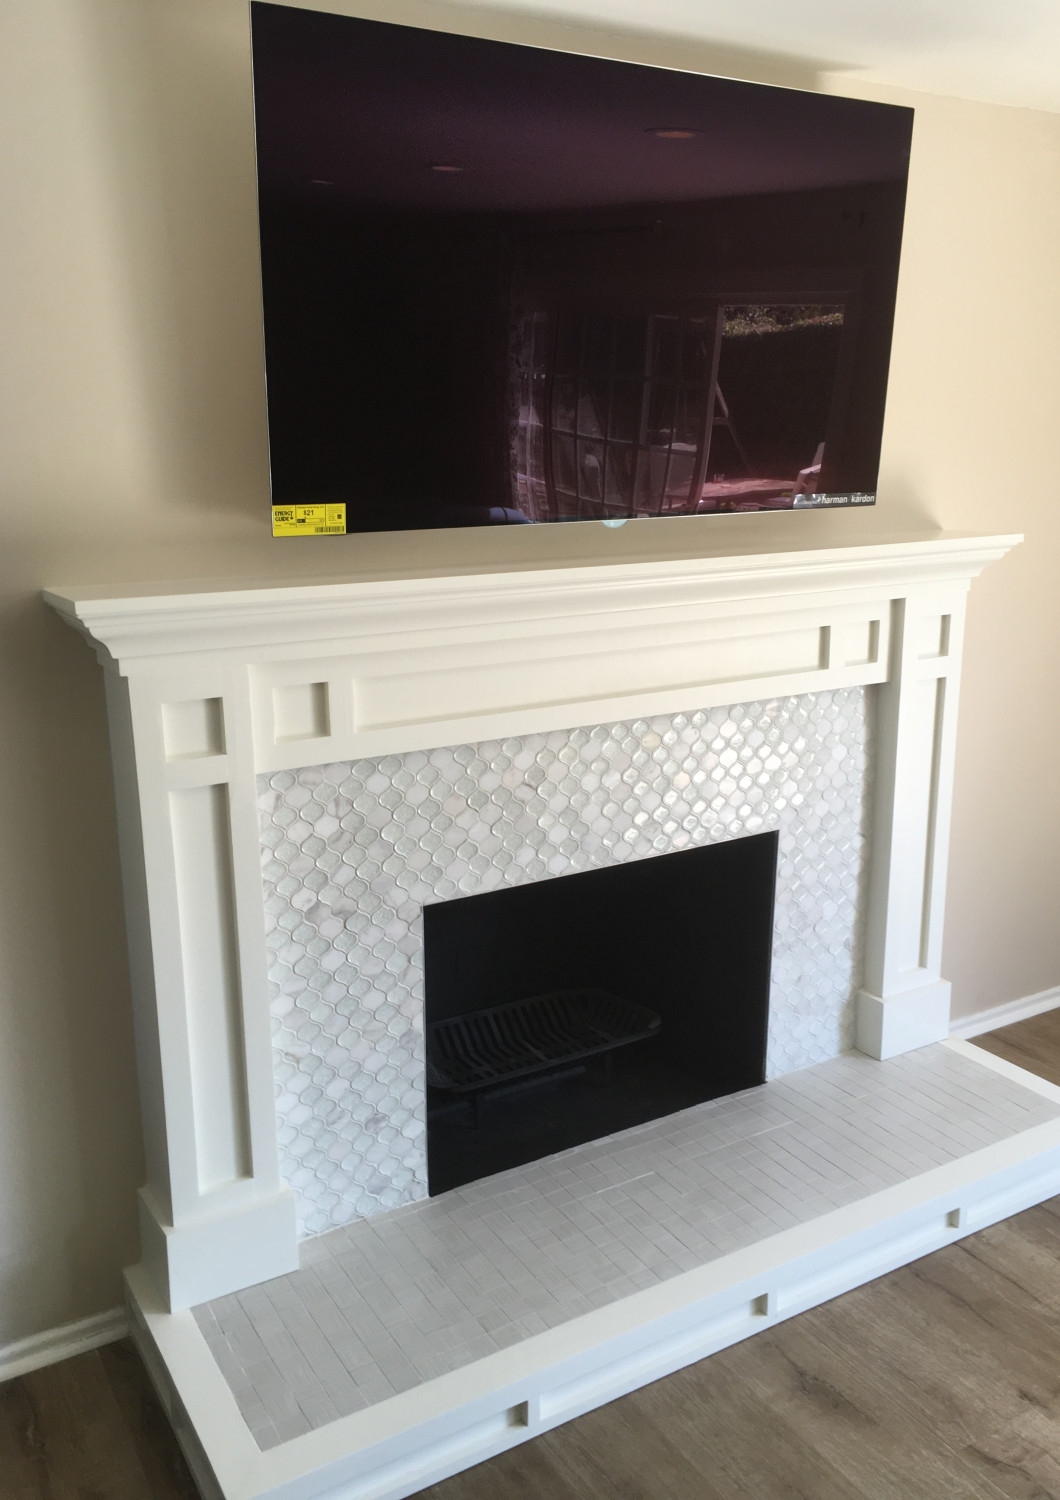 Superior Fireplace Remodeling Services in Huntington Beach, CA